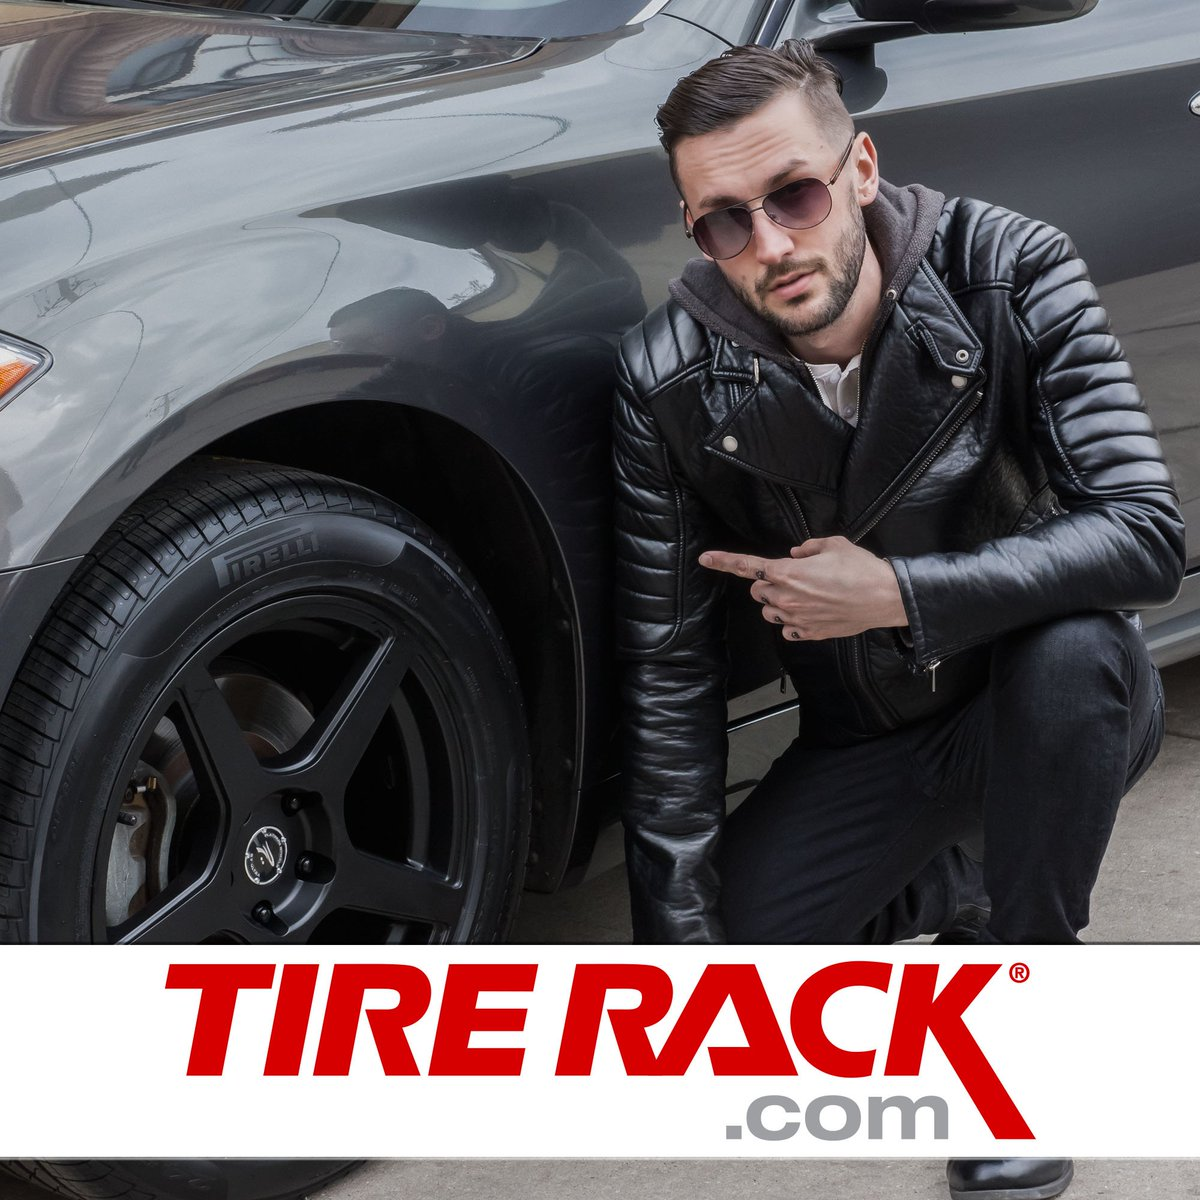 Great heists call for great tire performance. trib.al/qw670Mx